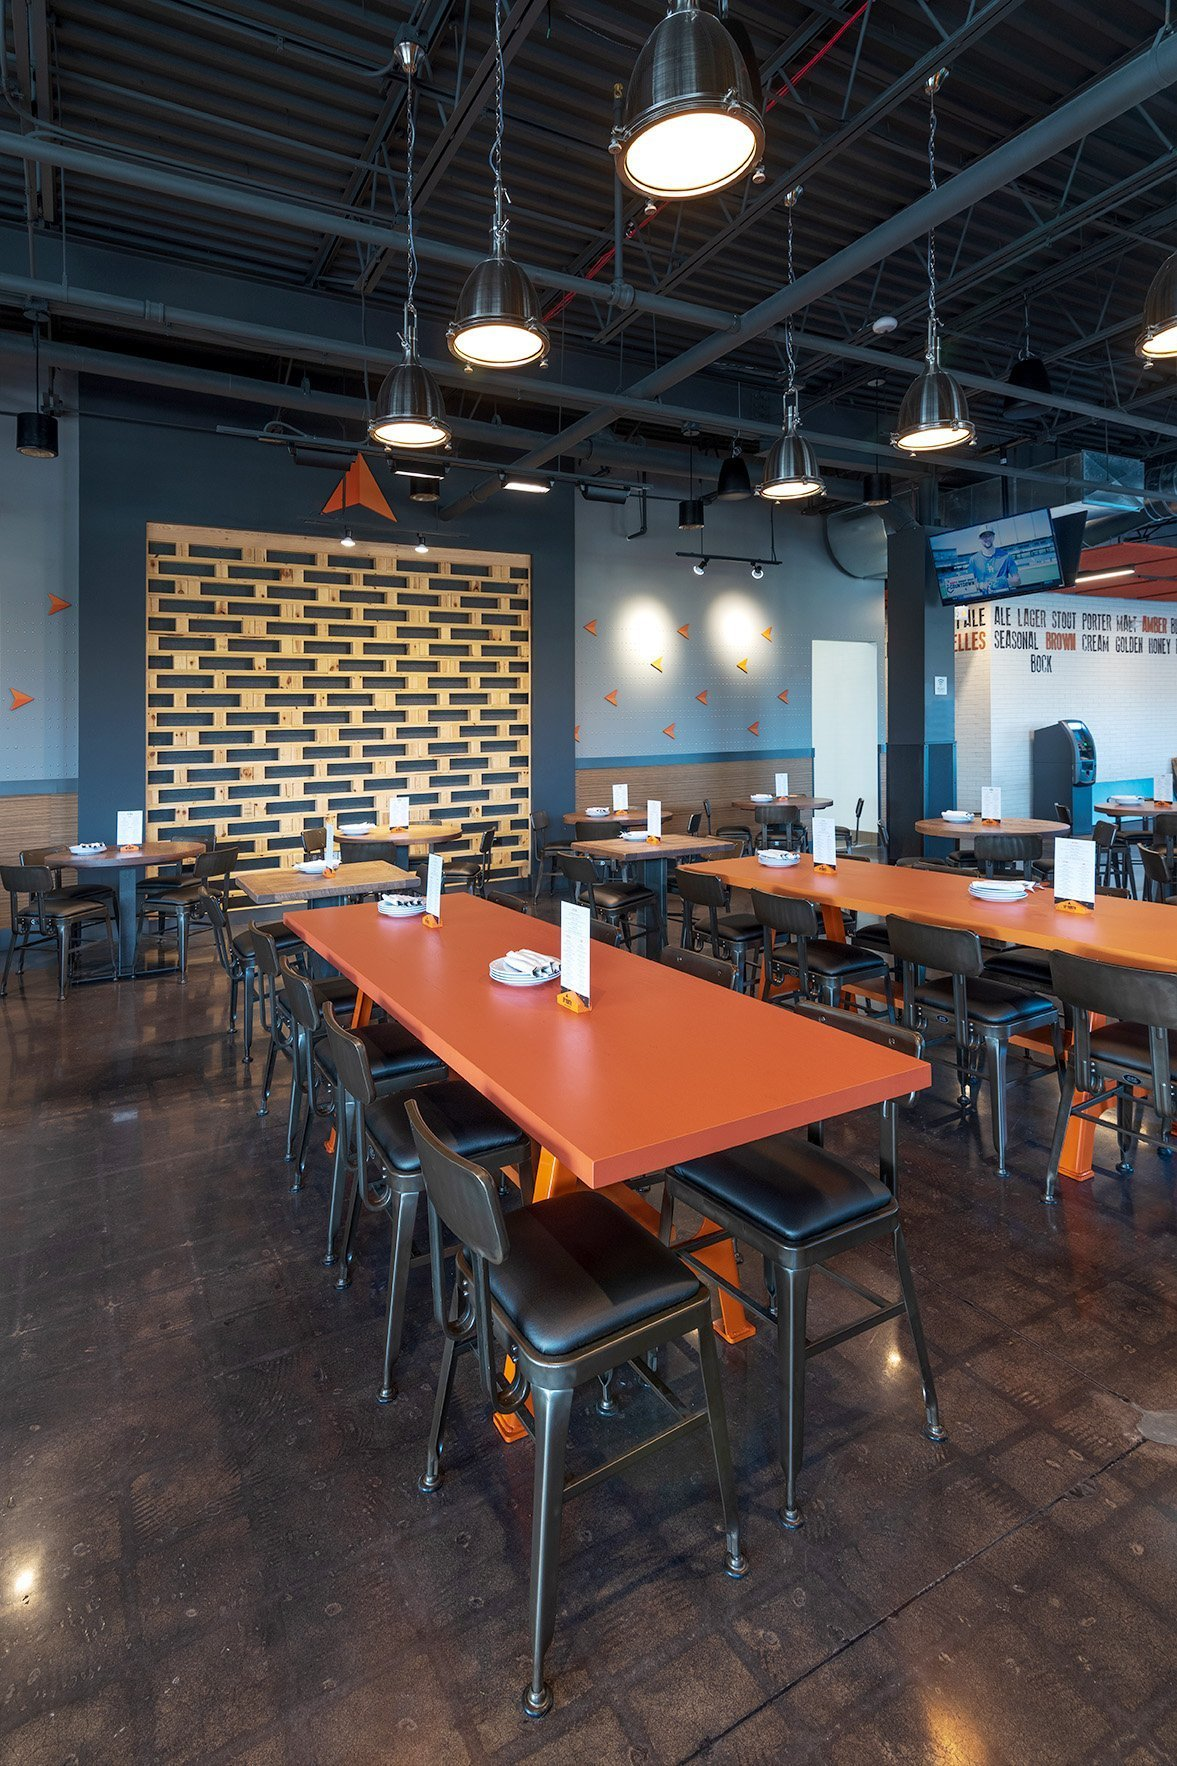 Orange community dining tables in front of the stage area with a custom stacked wood palette wall